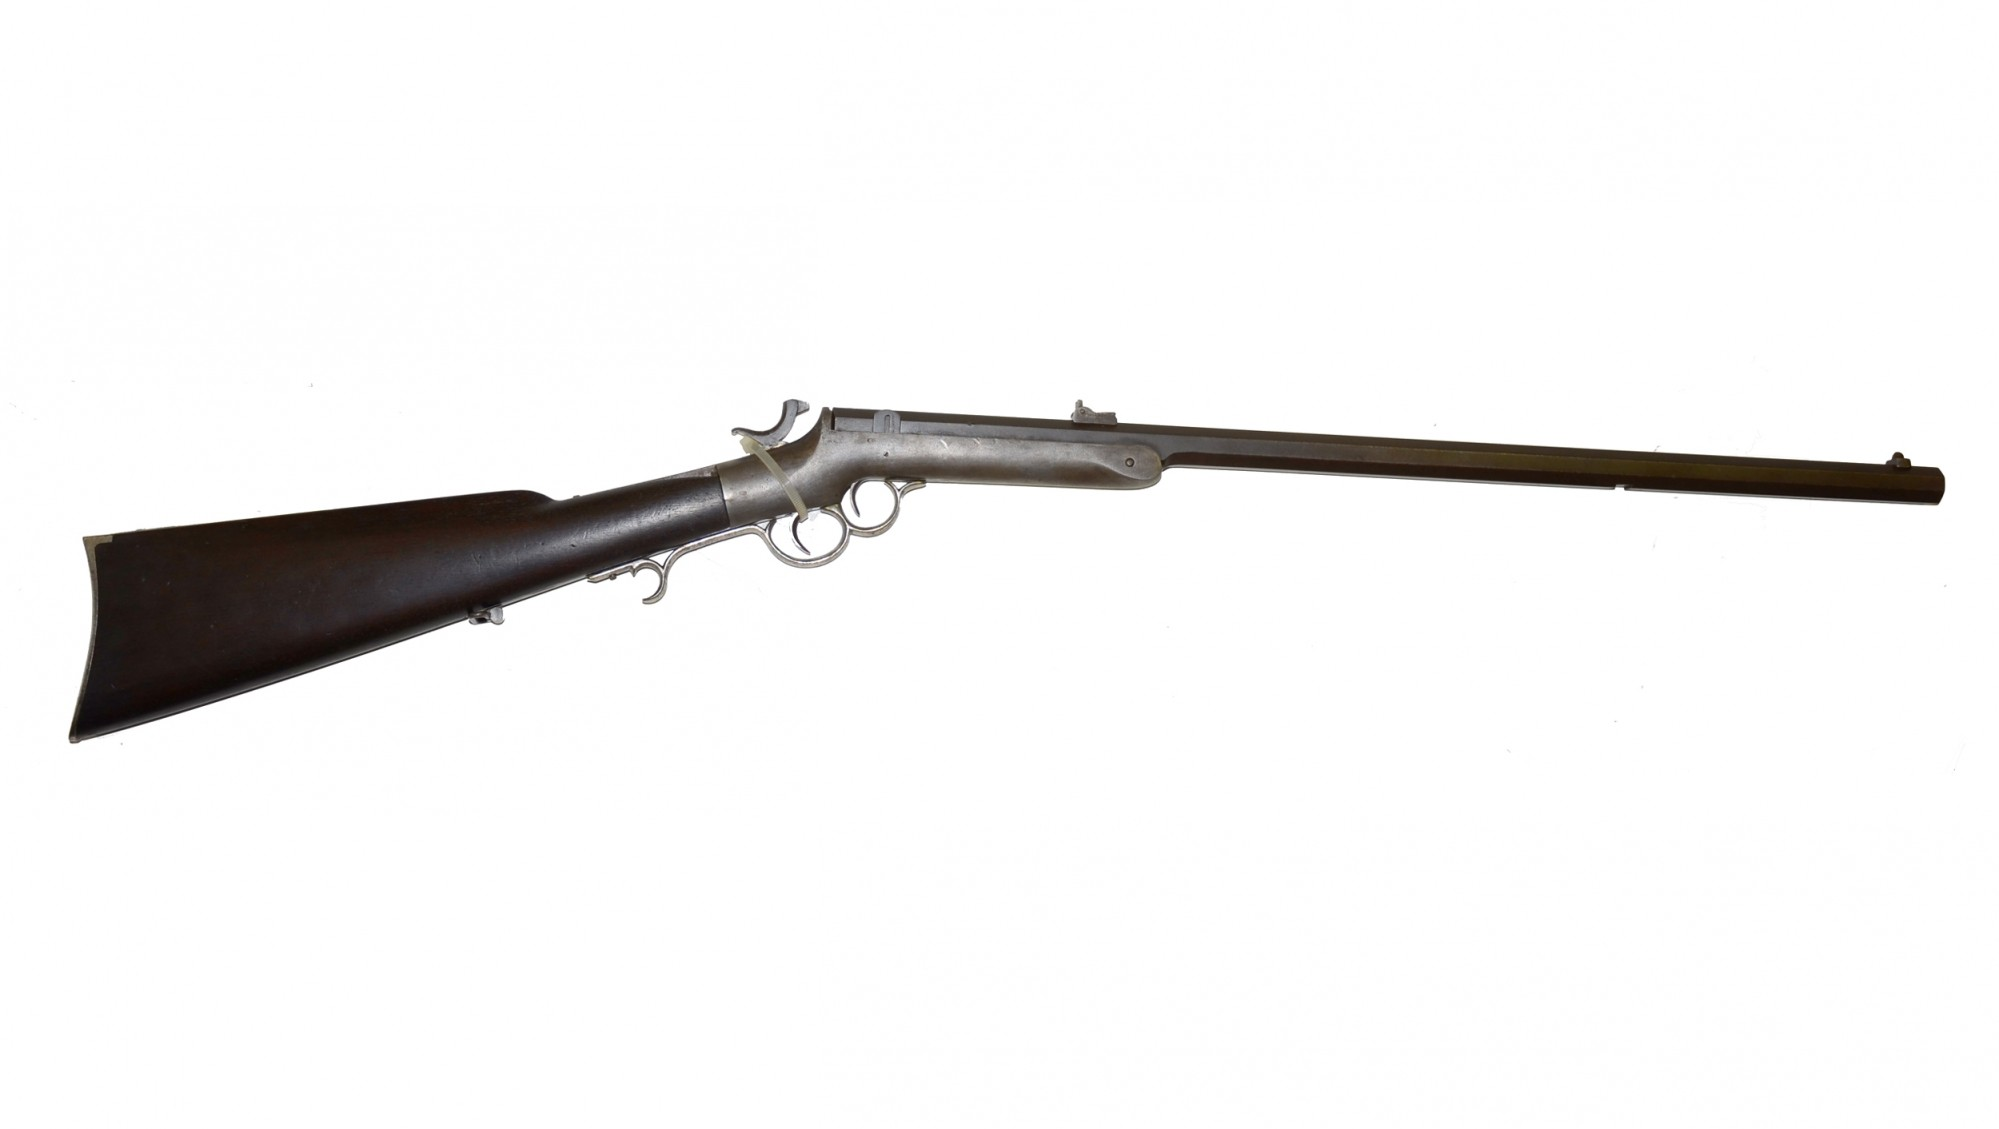 TWO-TRIGGER, FRANK WESSON RIFLE